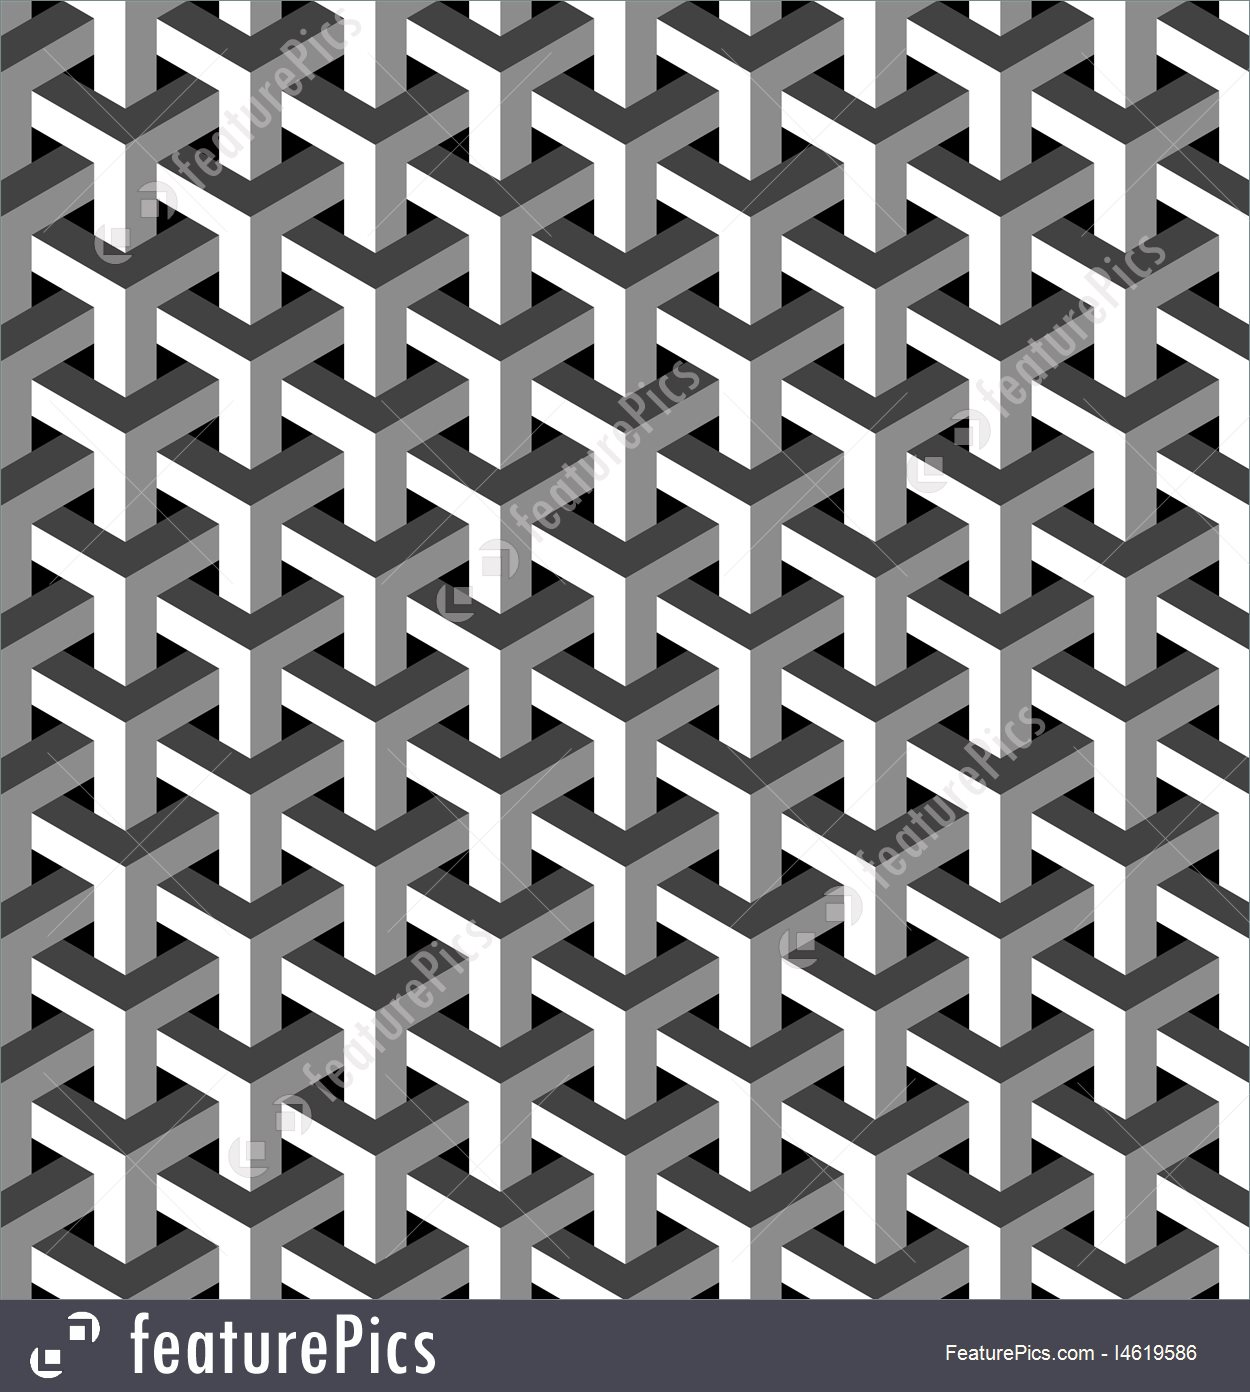 1250x1392 Abstract Patterns Abstract Isometric 3d Pattern Background